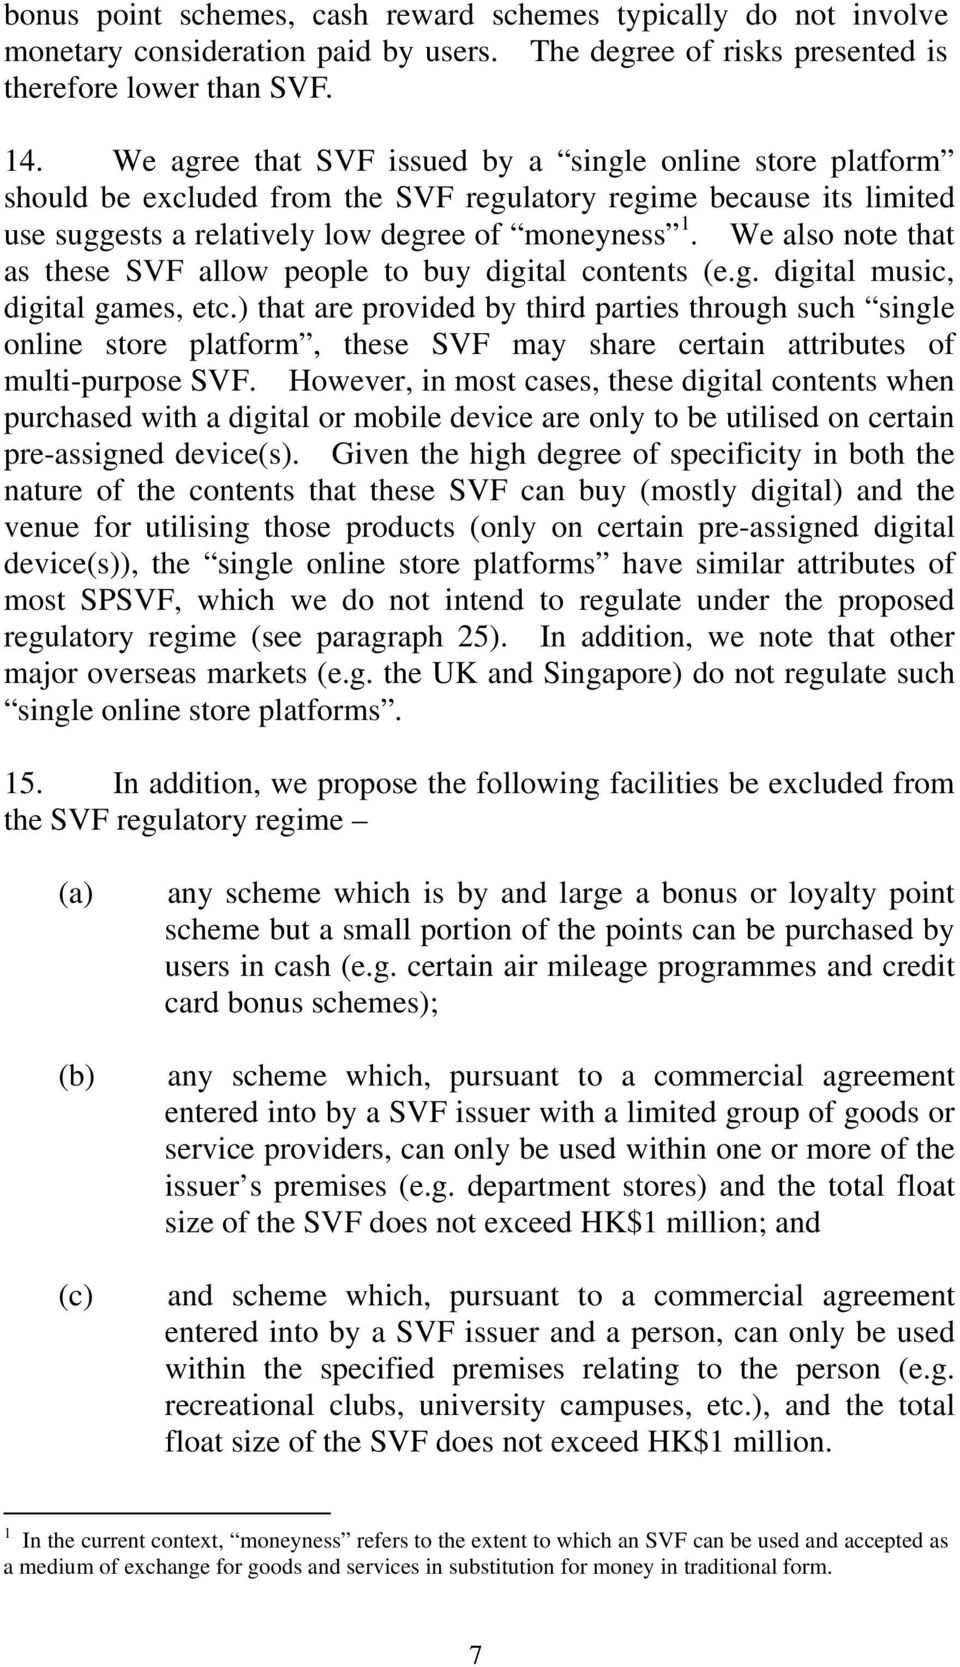 We also note that as these SVF allow people to buy digital contents (e.g. digital music, digital games, etc.